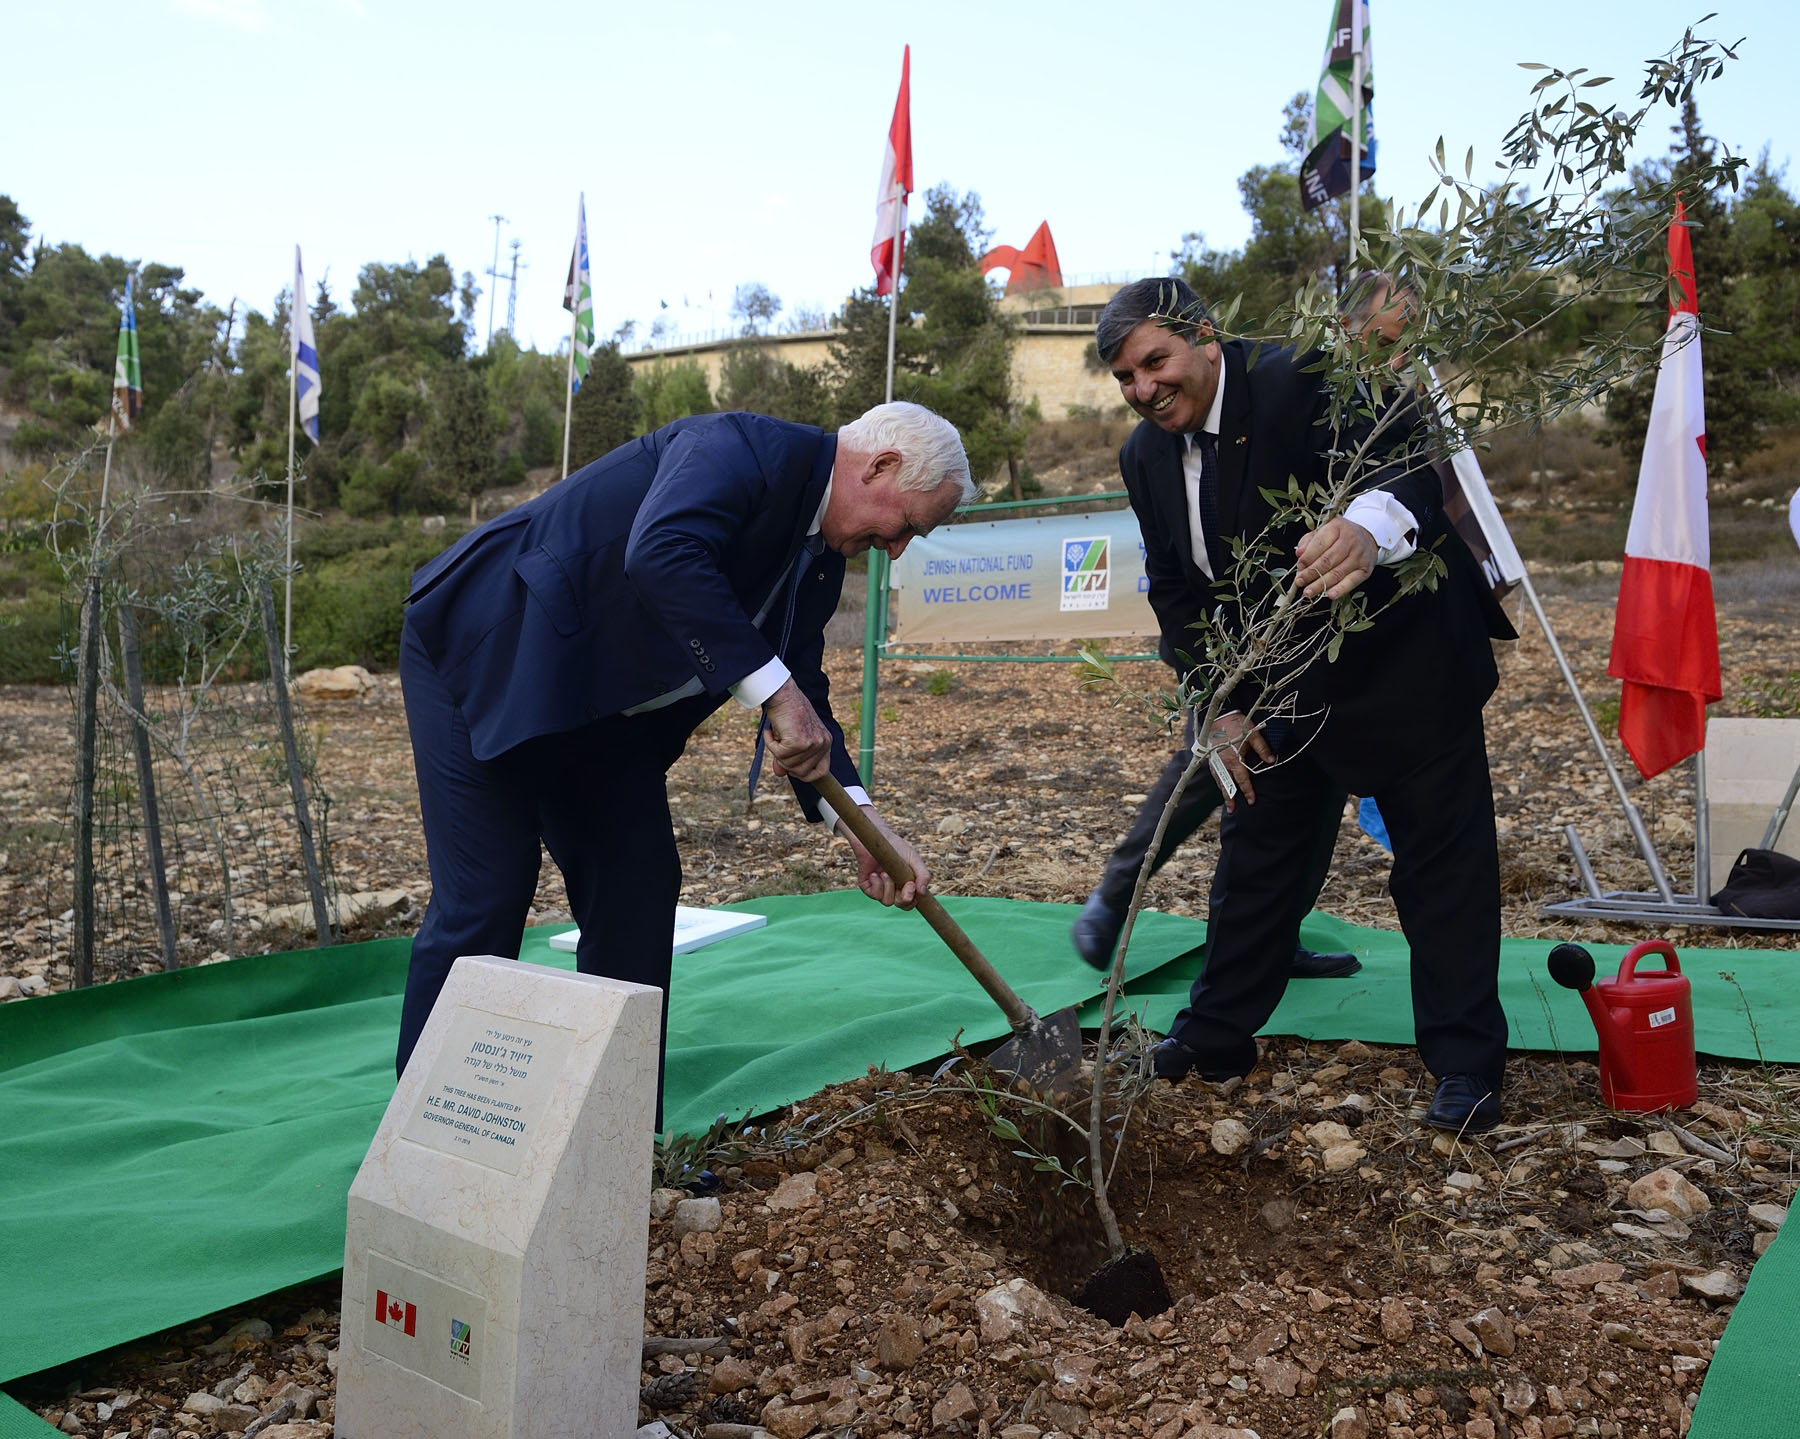 The Governor General was the first Canadian to plant an olive tree as a symbol of peace in the Grove of Nations, home to many trees that have been planted by heads of State from all over the world.